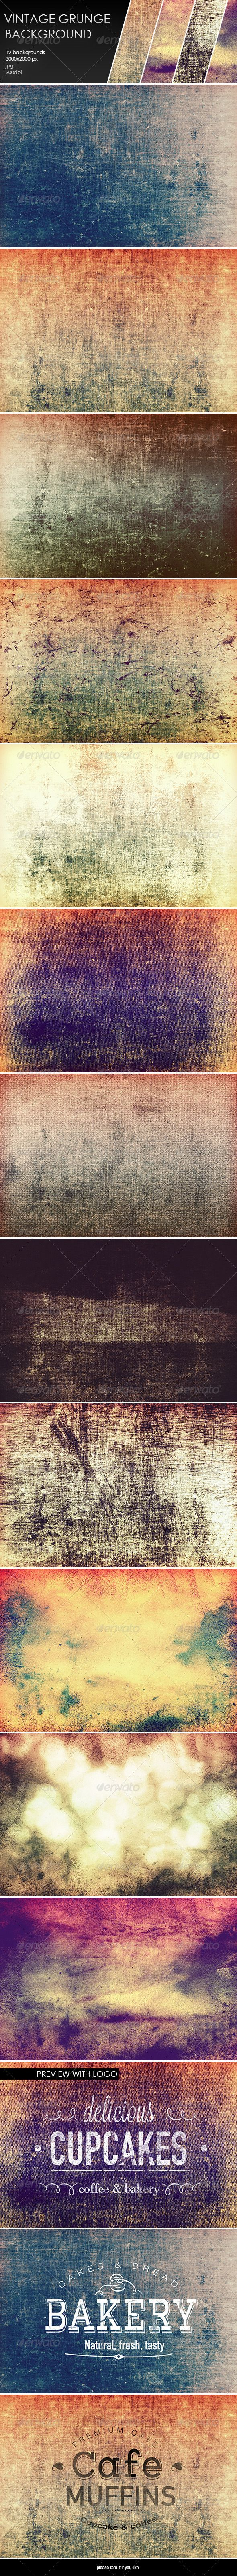 12 Vintage Grunge Backgrounds